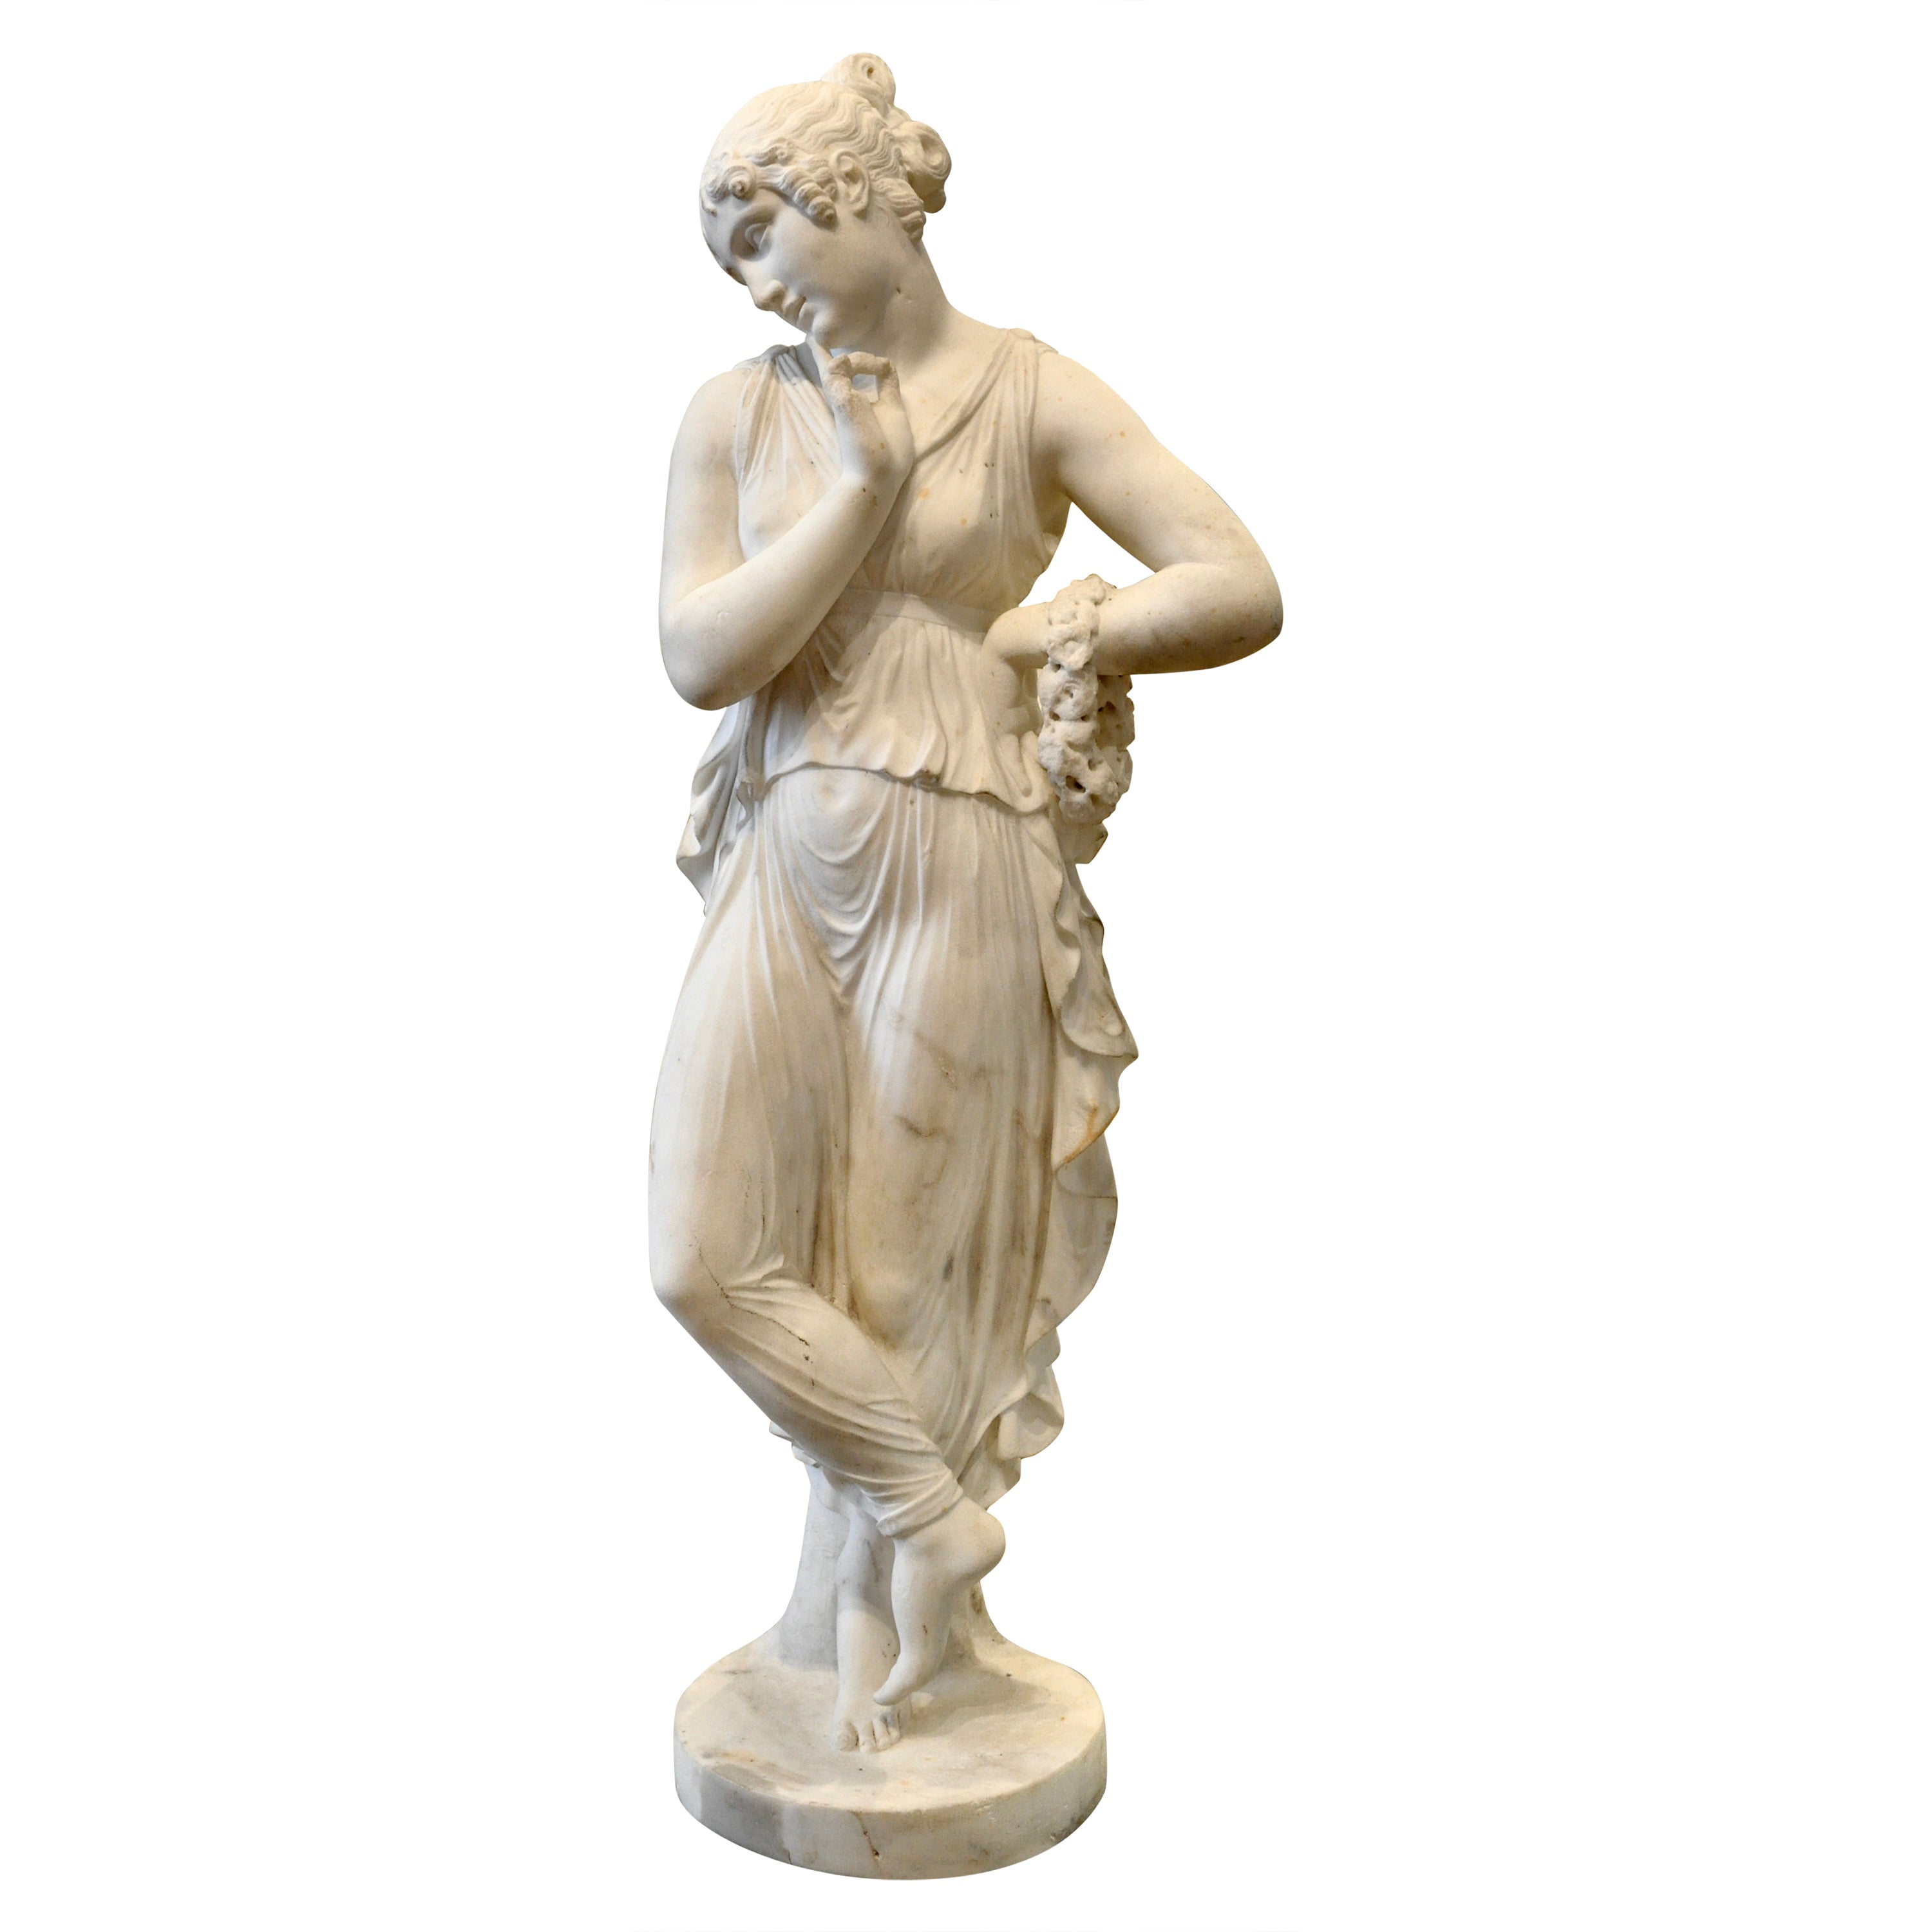 19th Century Neoclassical Carved Marble Statue of Canova's Dancing Woman